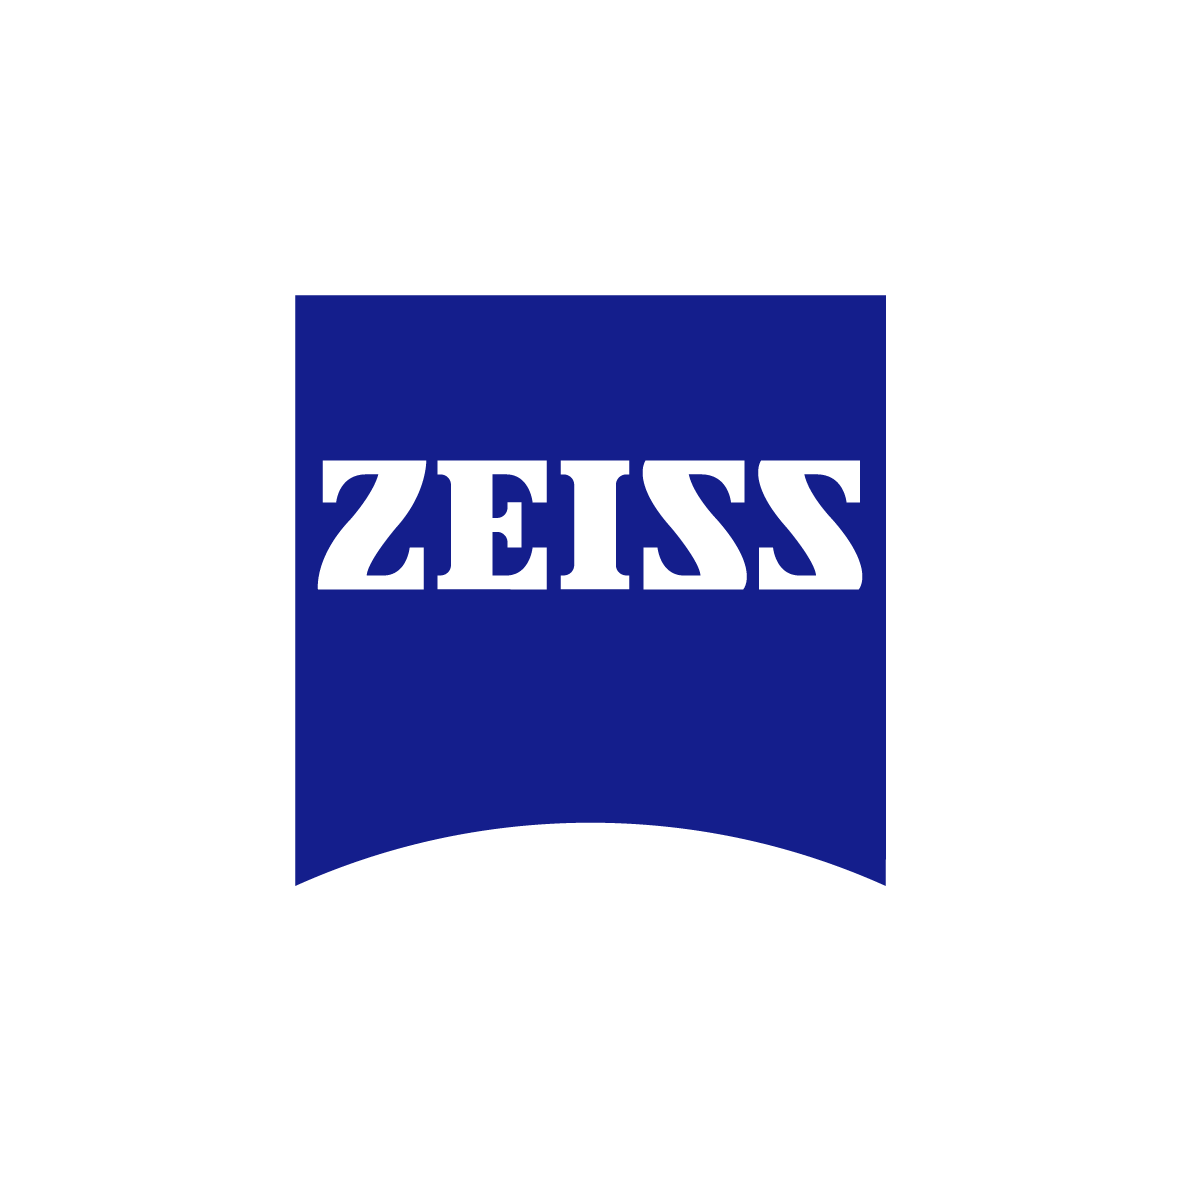 Zeiss About Lens Distortion cln33